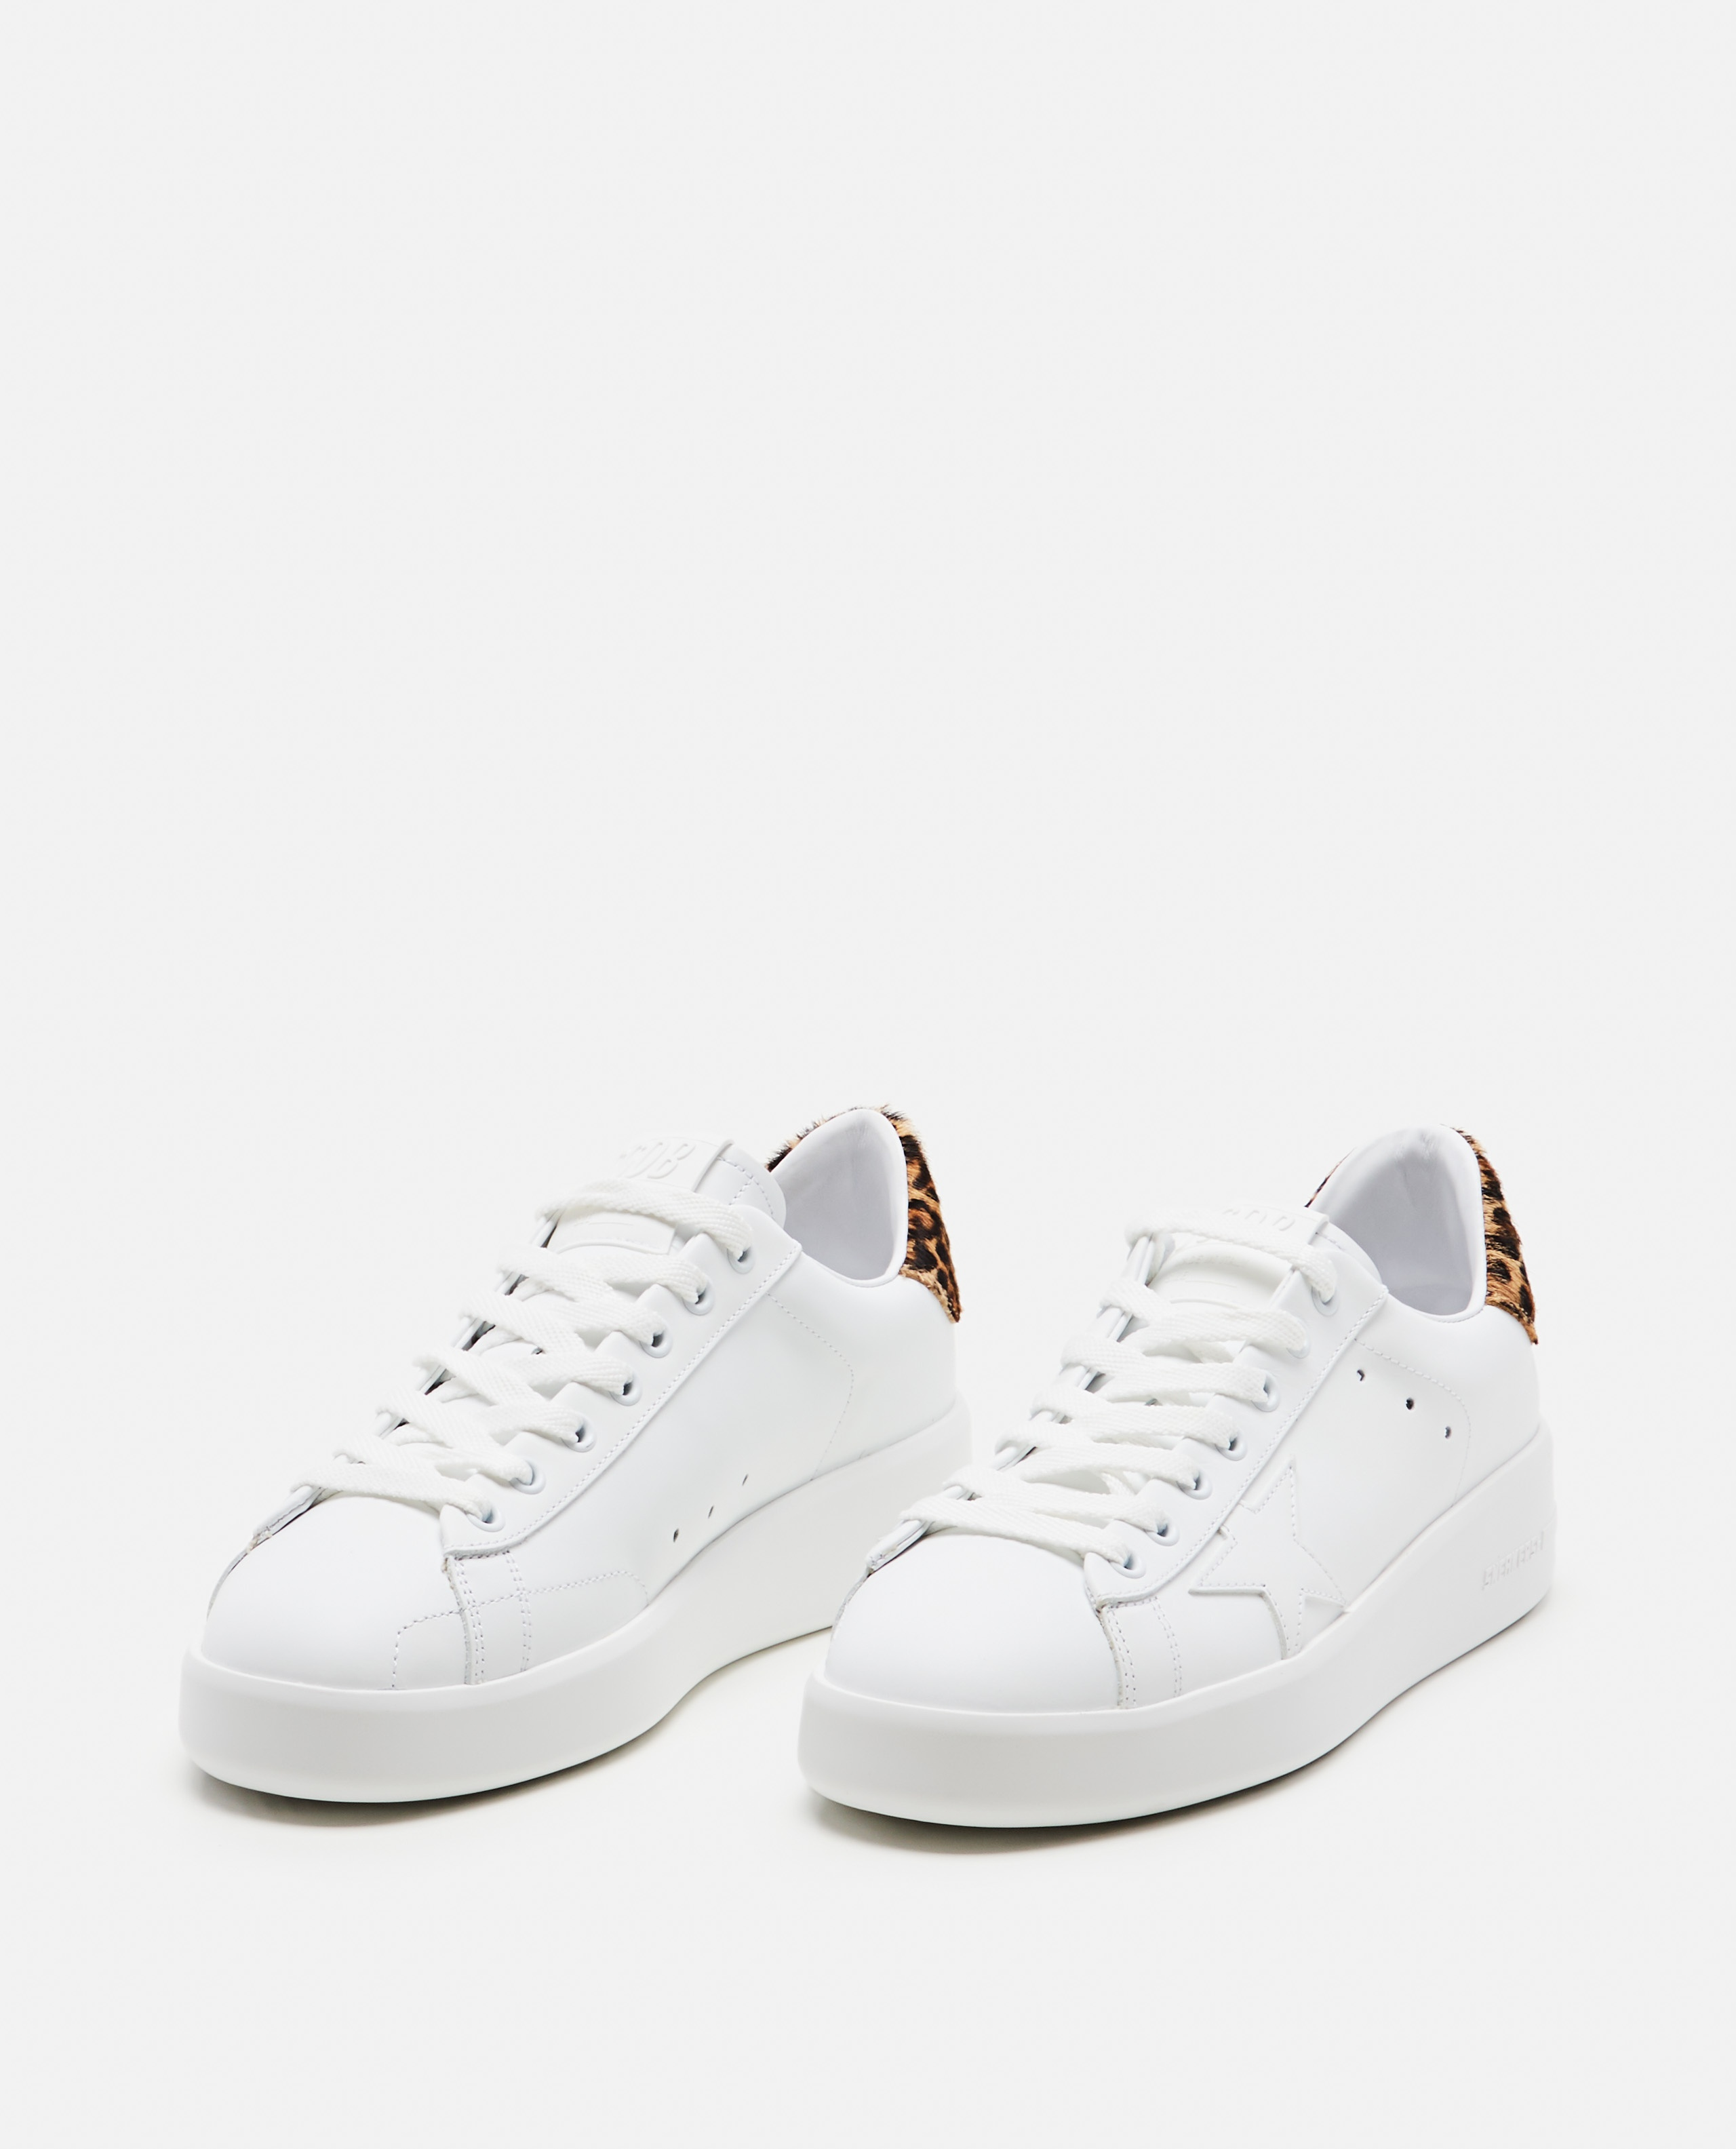 PURESTAR sneakers Women Golden Goose 000256870037945 2